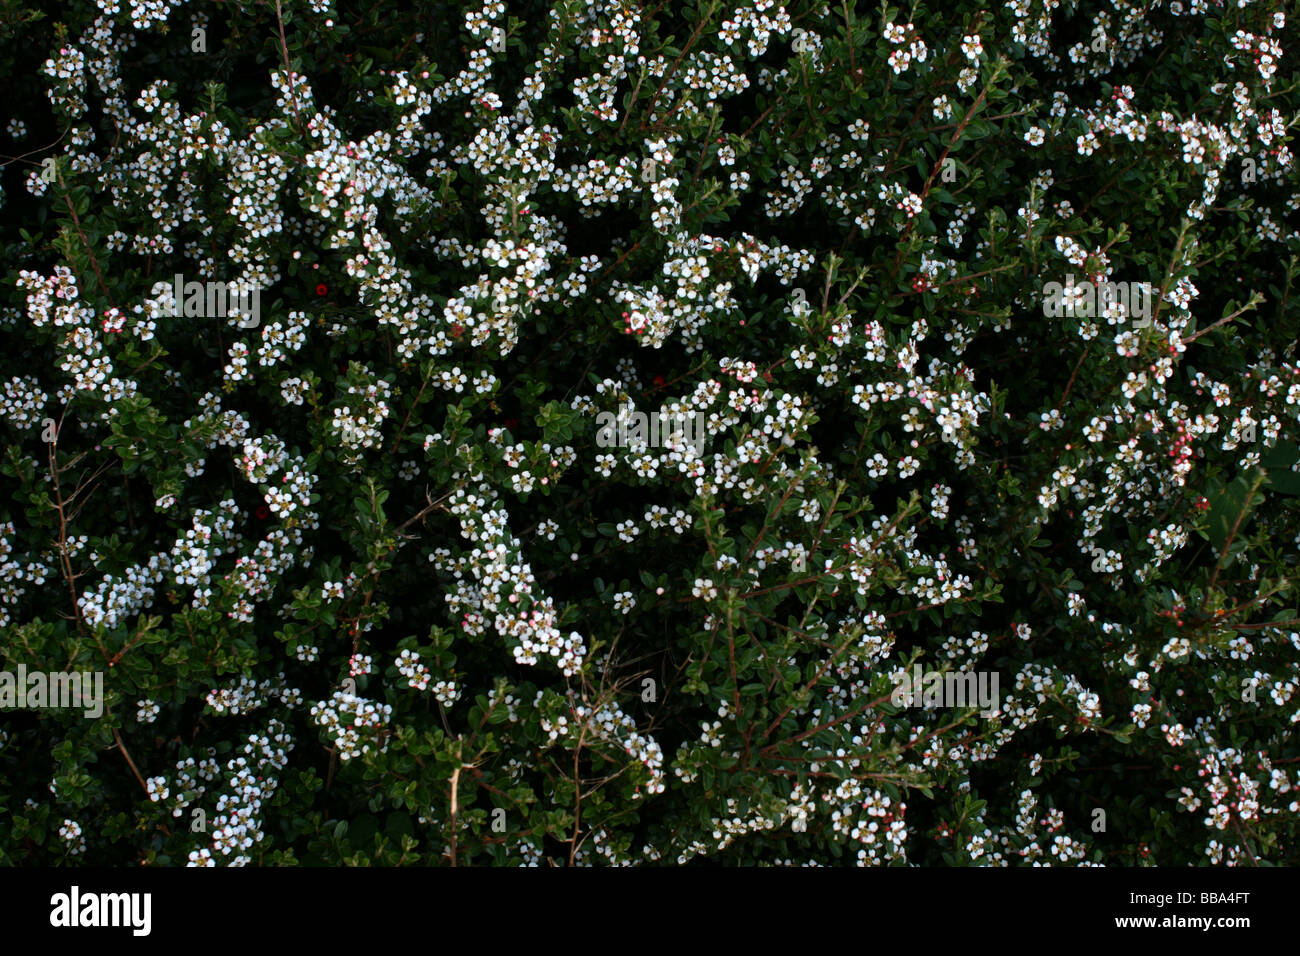 Bush With White Flowers Stock Photos Bush With White Flowers Stock